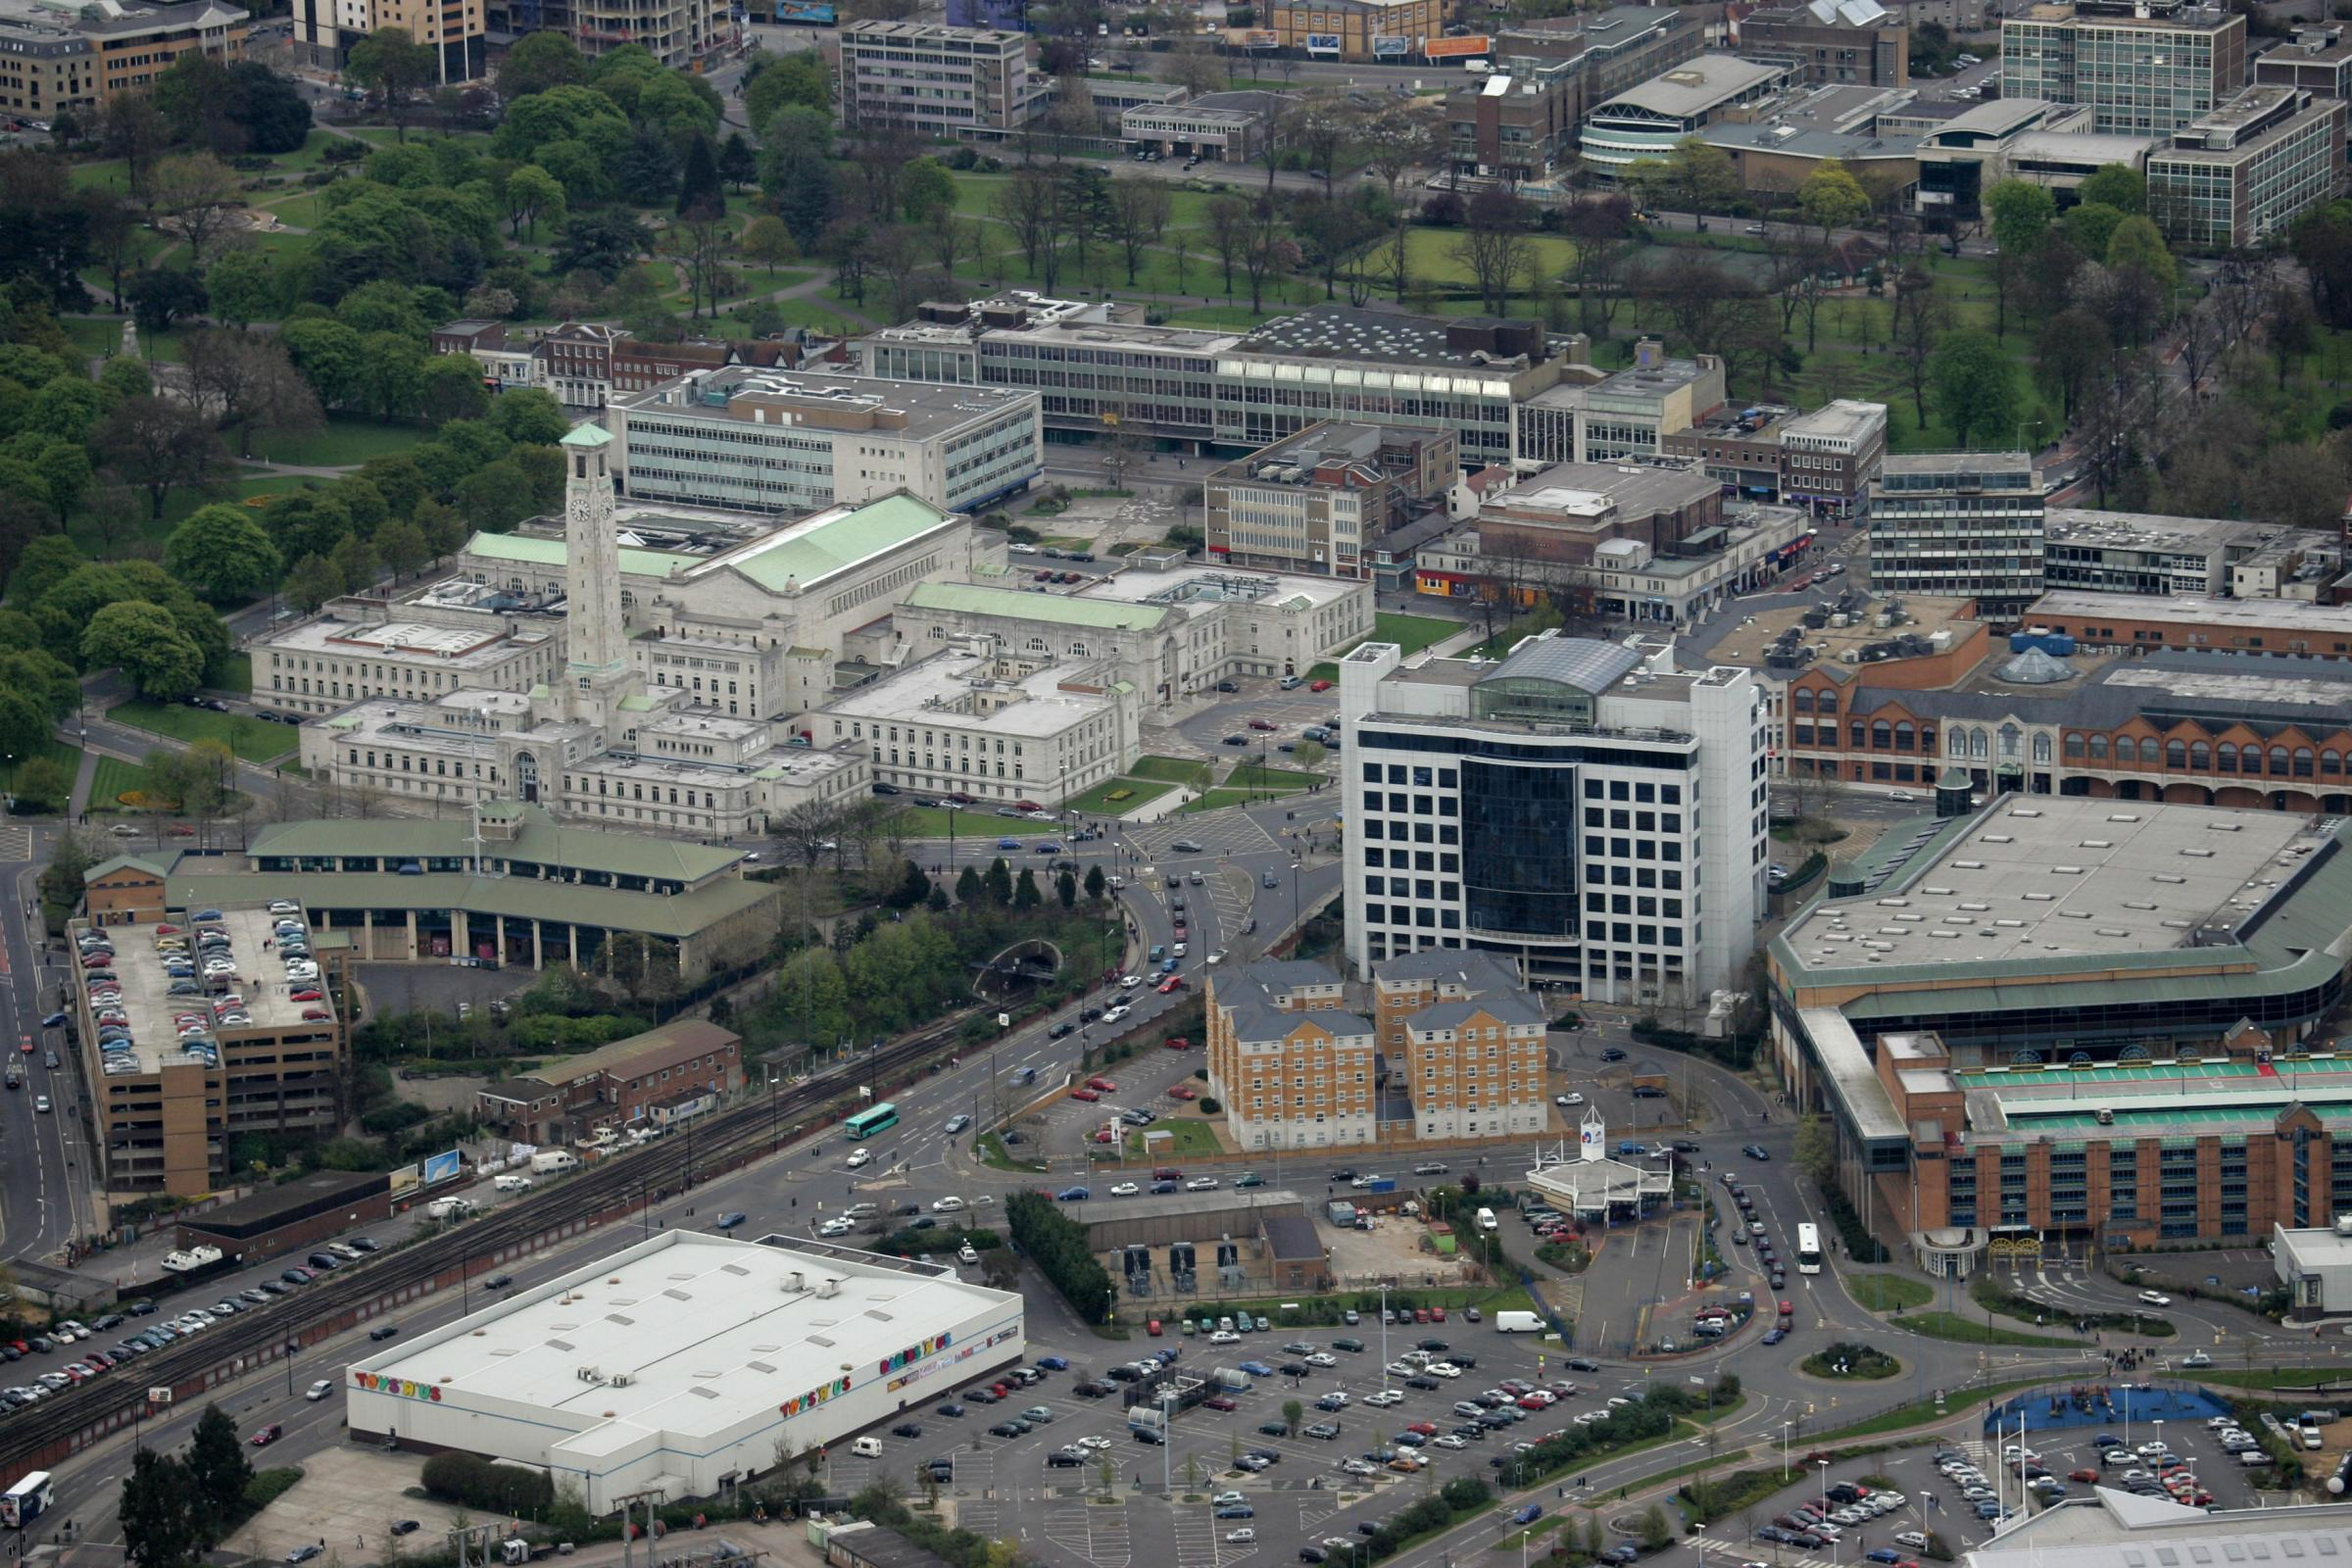 Aerial eye in the sky pics - Southampton  - Civic Centre - Skandia House - BBC - Marlands Centre.